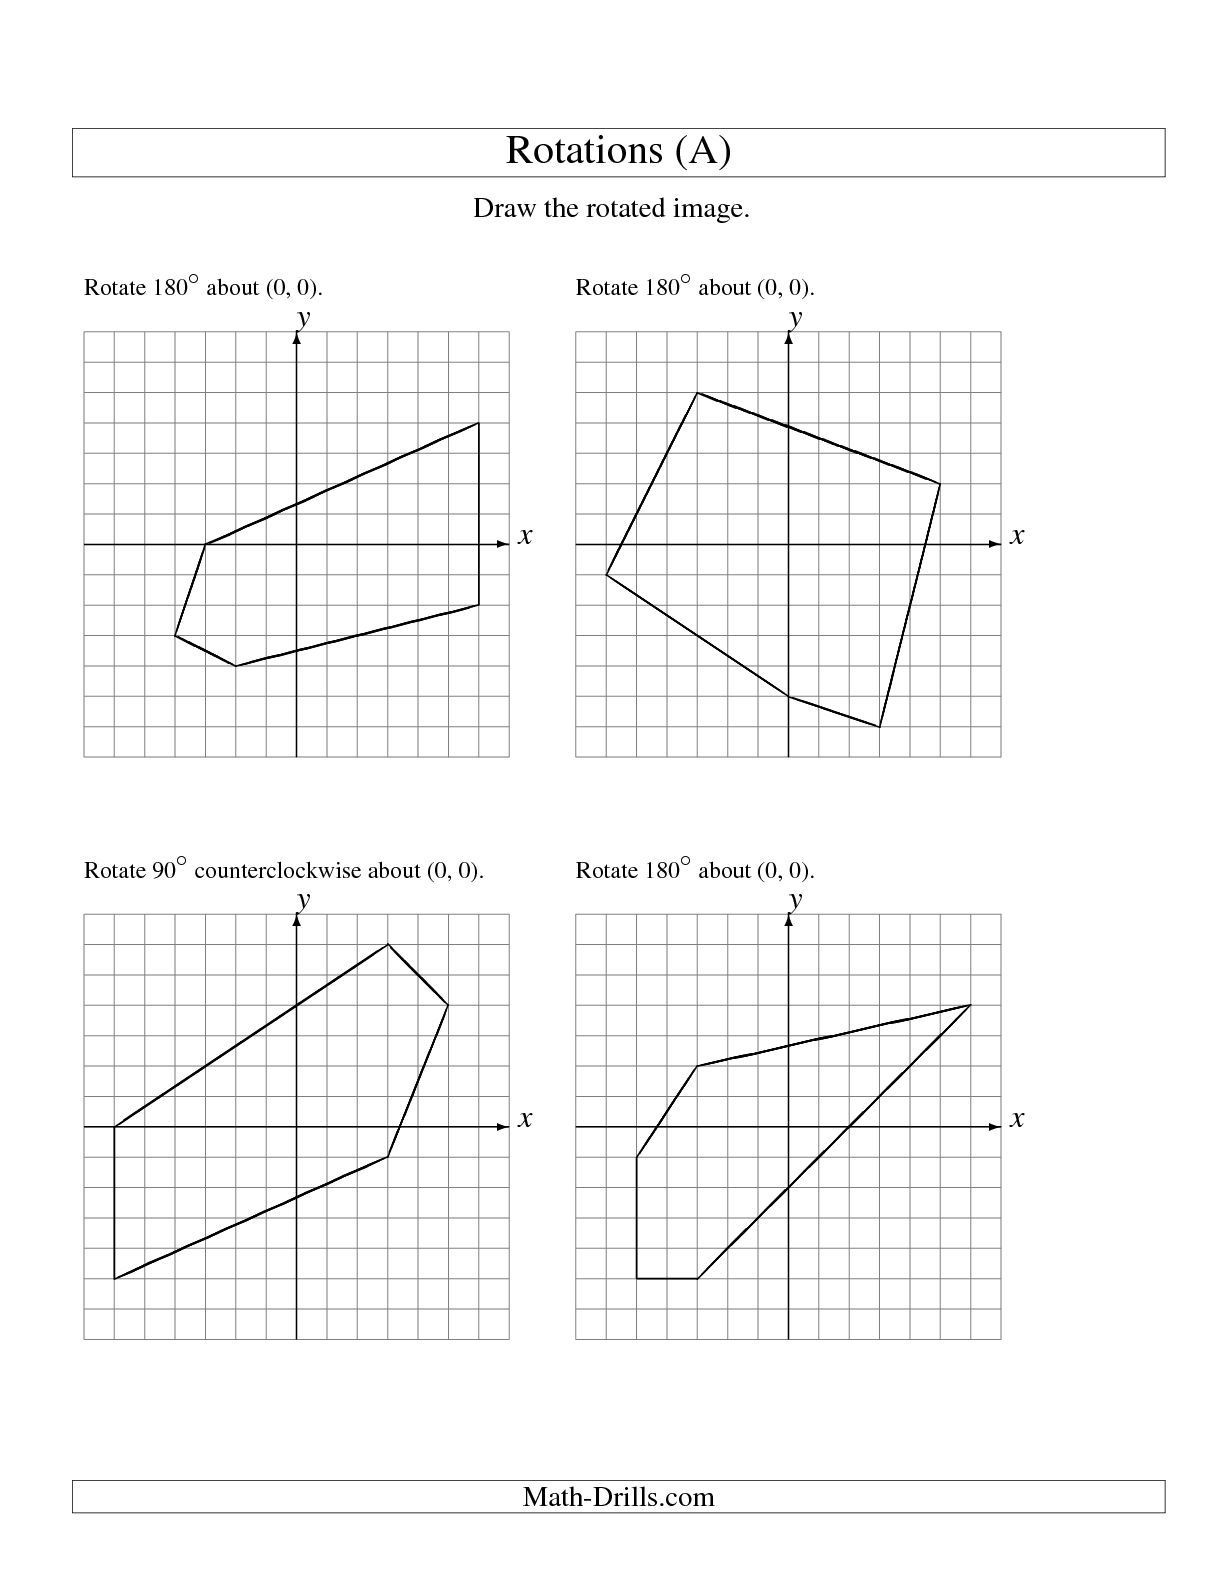 reflections and rotations worksheets printable math conversion 4th grade geometry worksheet preschool activities kinder sheets fraction review 8th level is fun sequences free